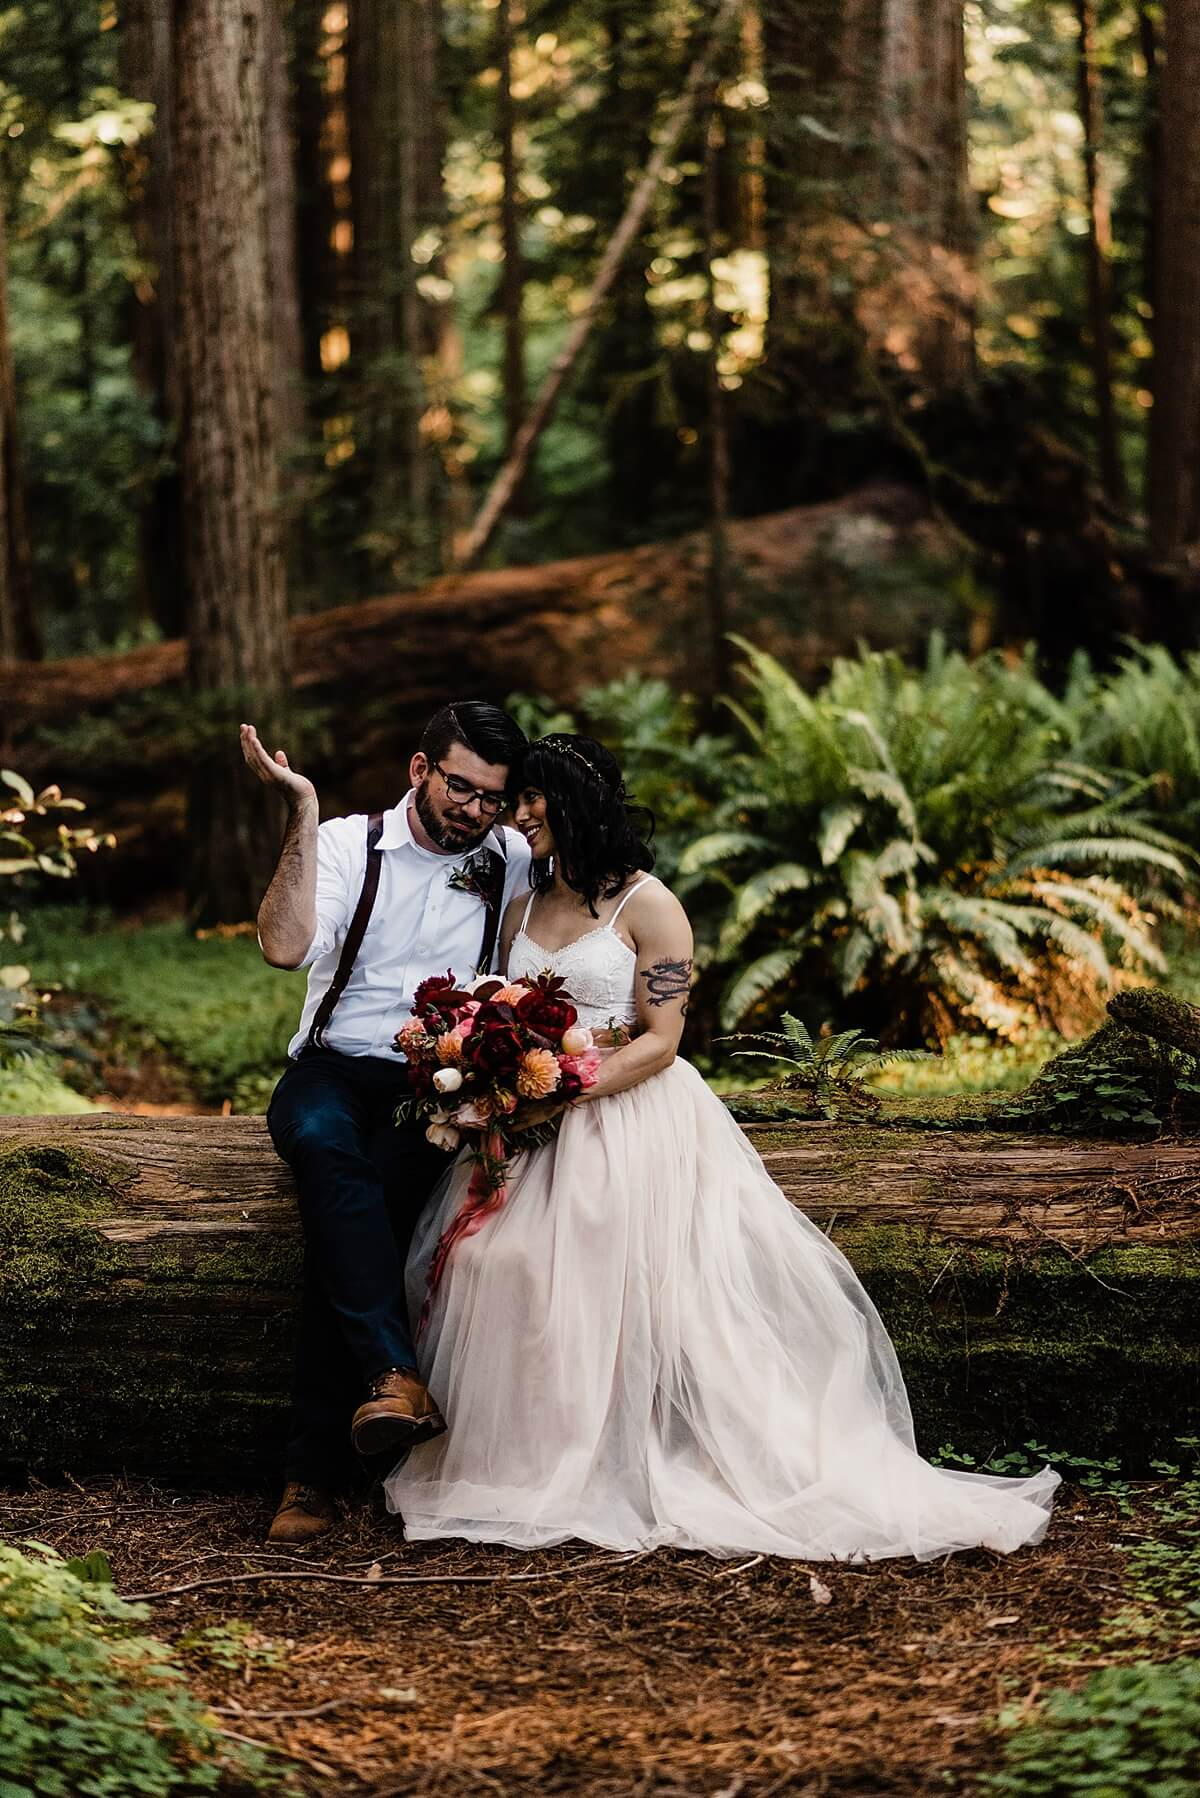 Allison-Brooks-Jedediah-Smiith-Redwoods-Adventure-Elopement-Wedding-S-Photography-Blog_0045.jpg